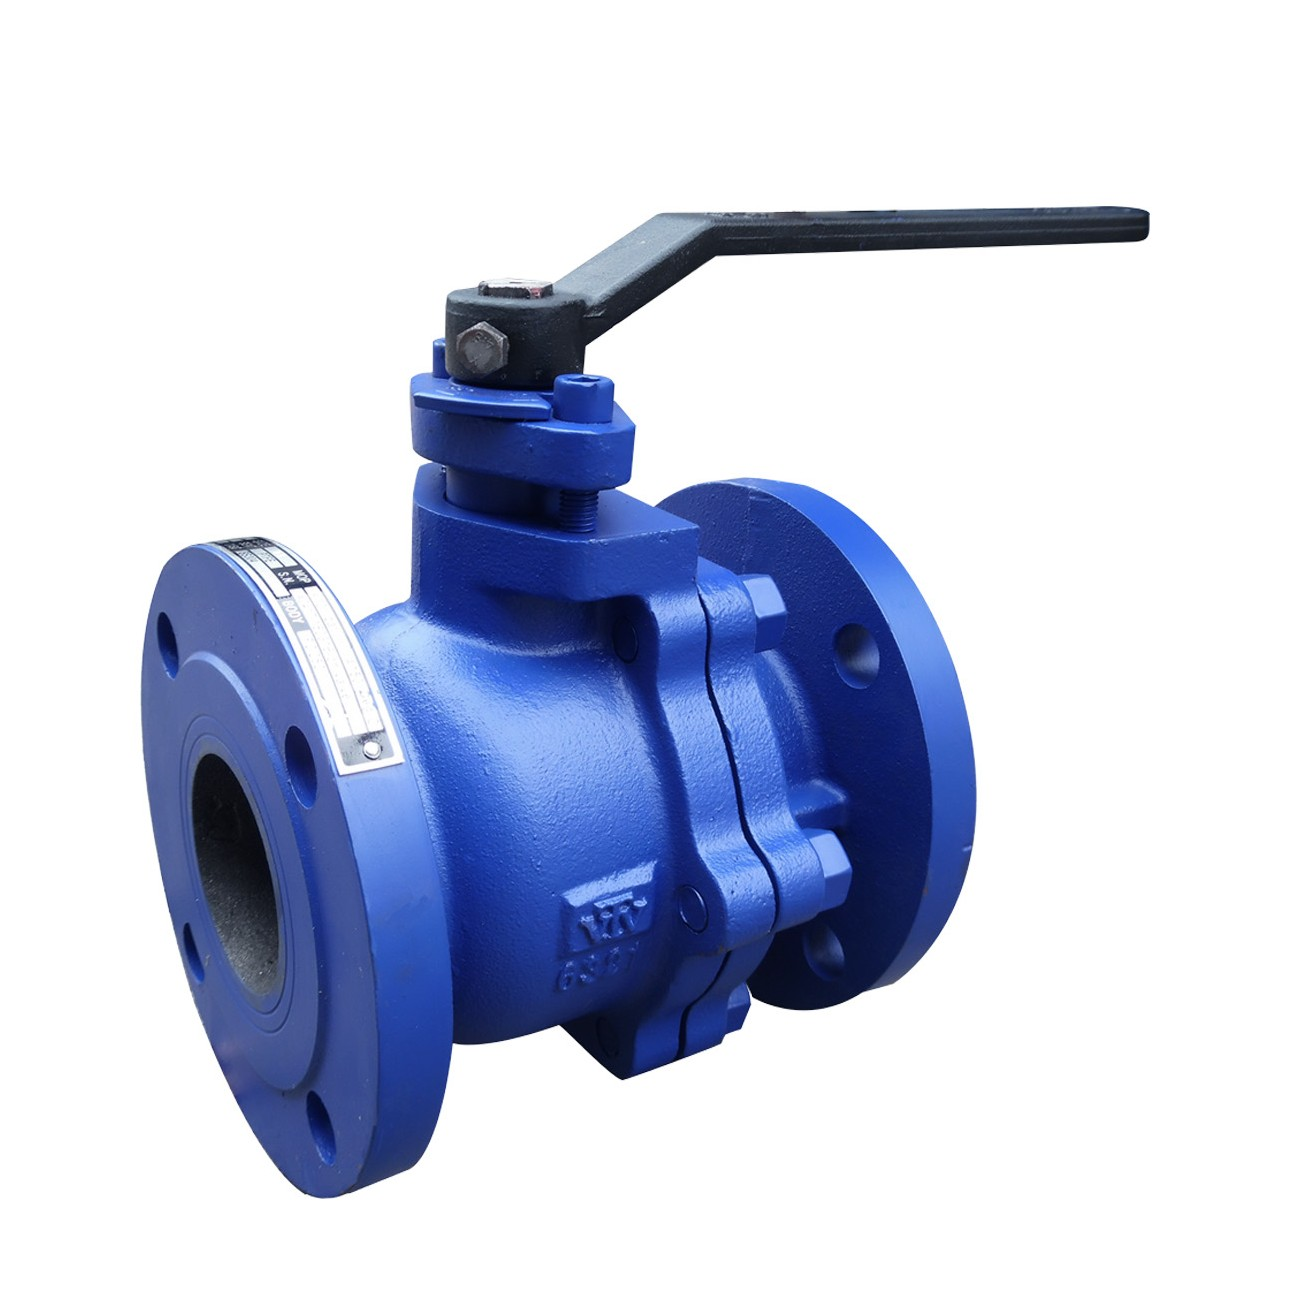 VTV 2pcs Body Ball Valve, Cast Iron, JIS 10K, 8""